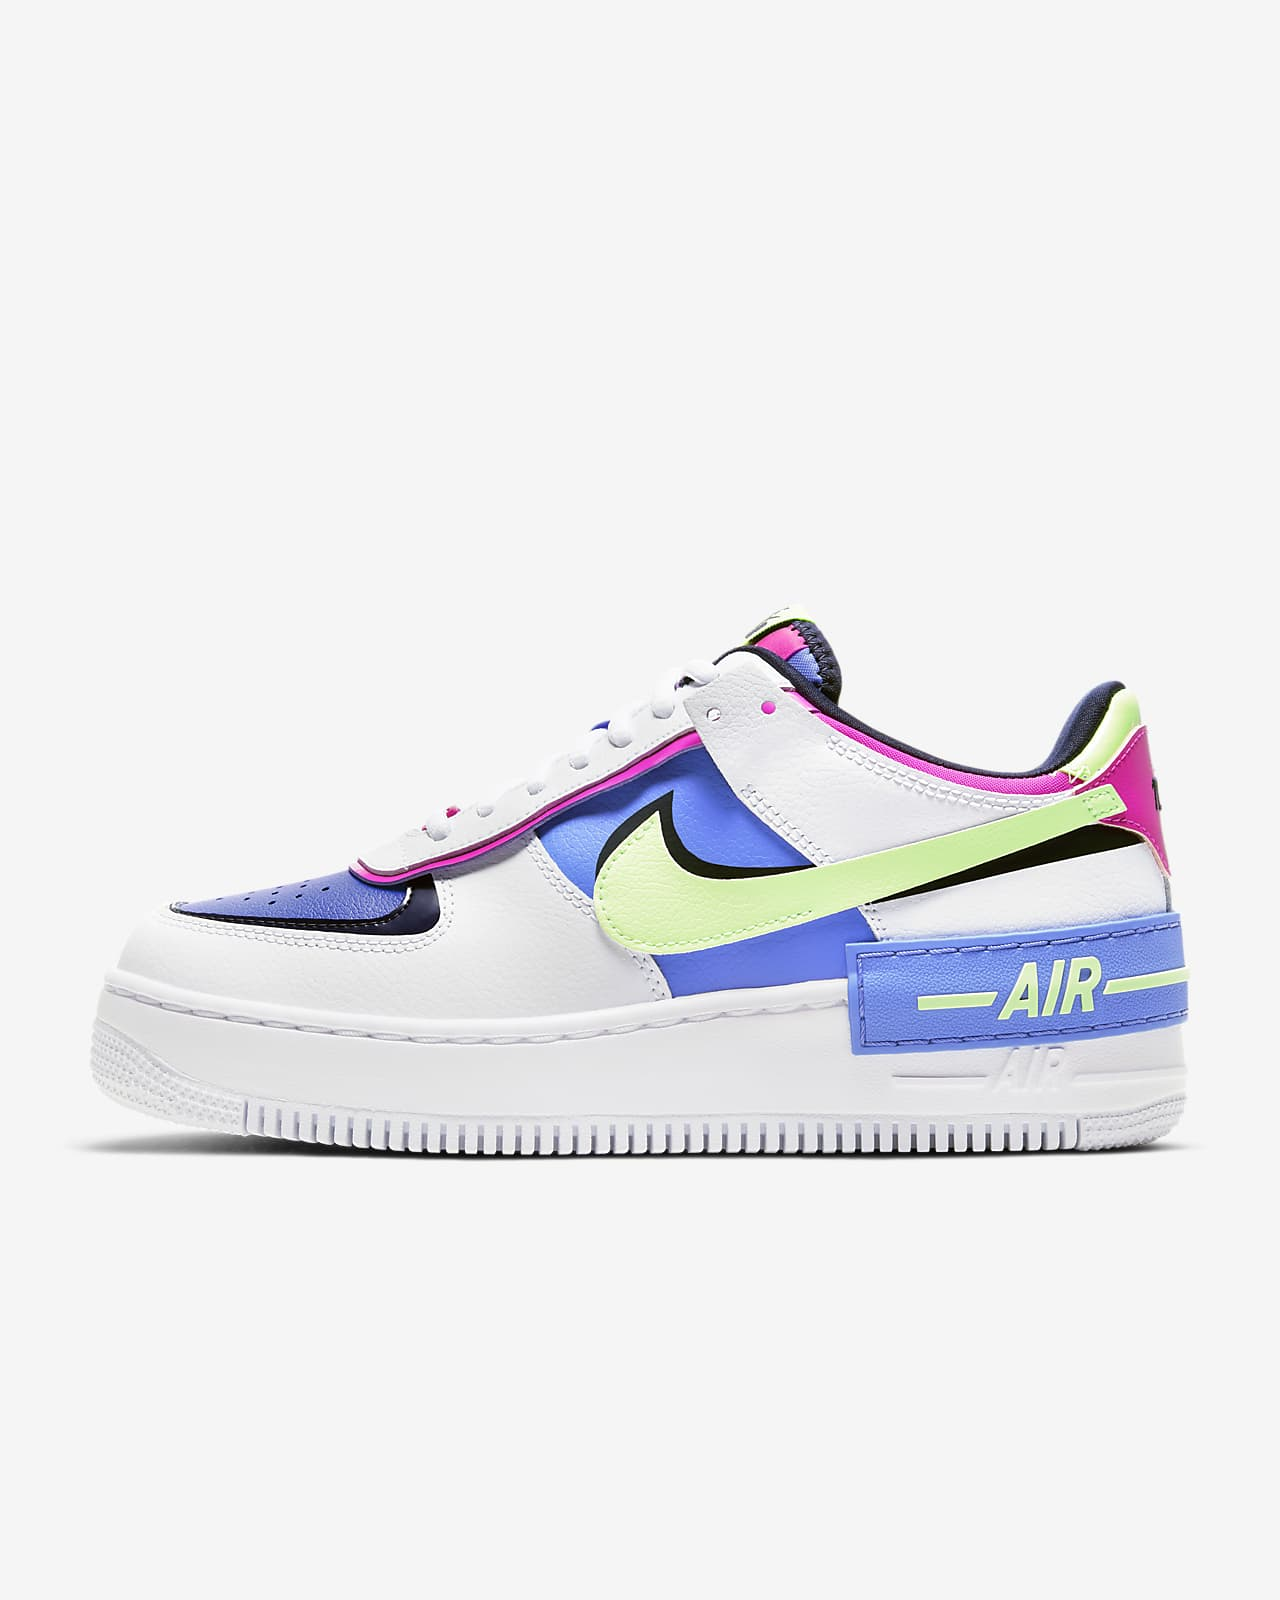 nike air force 1 shadow - mujer zapatillas